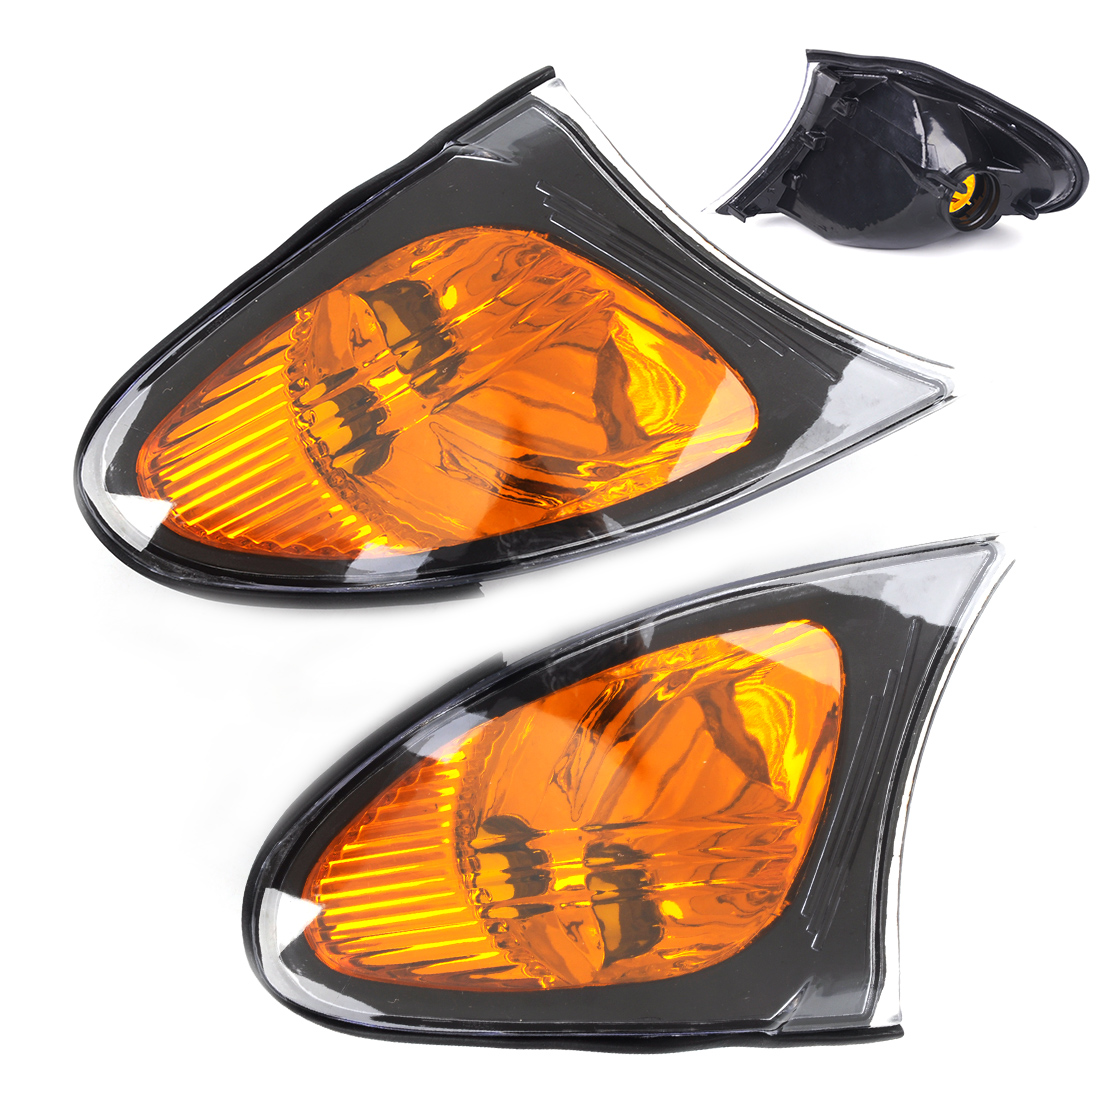 DWCX 2x Car Left Right Yellow Corner Light Lamp BM2521109 BM2520109 for BMW 3 Series E46 325i 325xi 330i 330xi 2002 2003 - 2005<br>